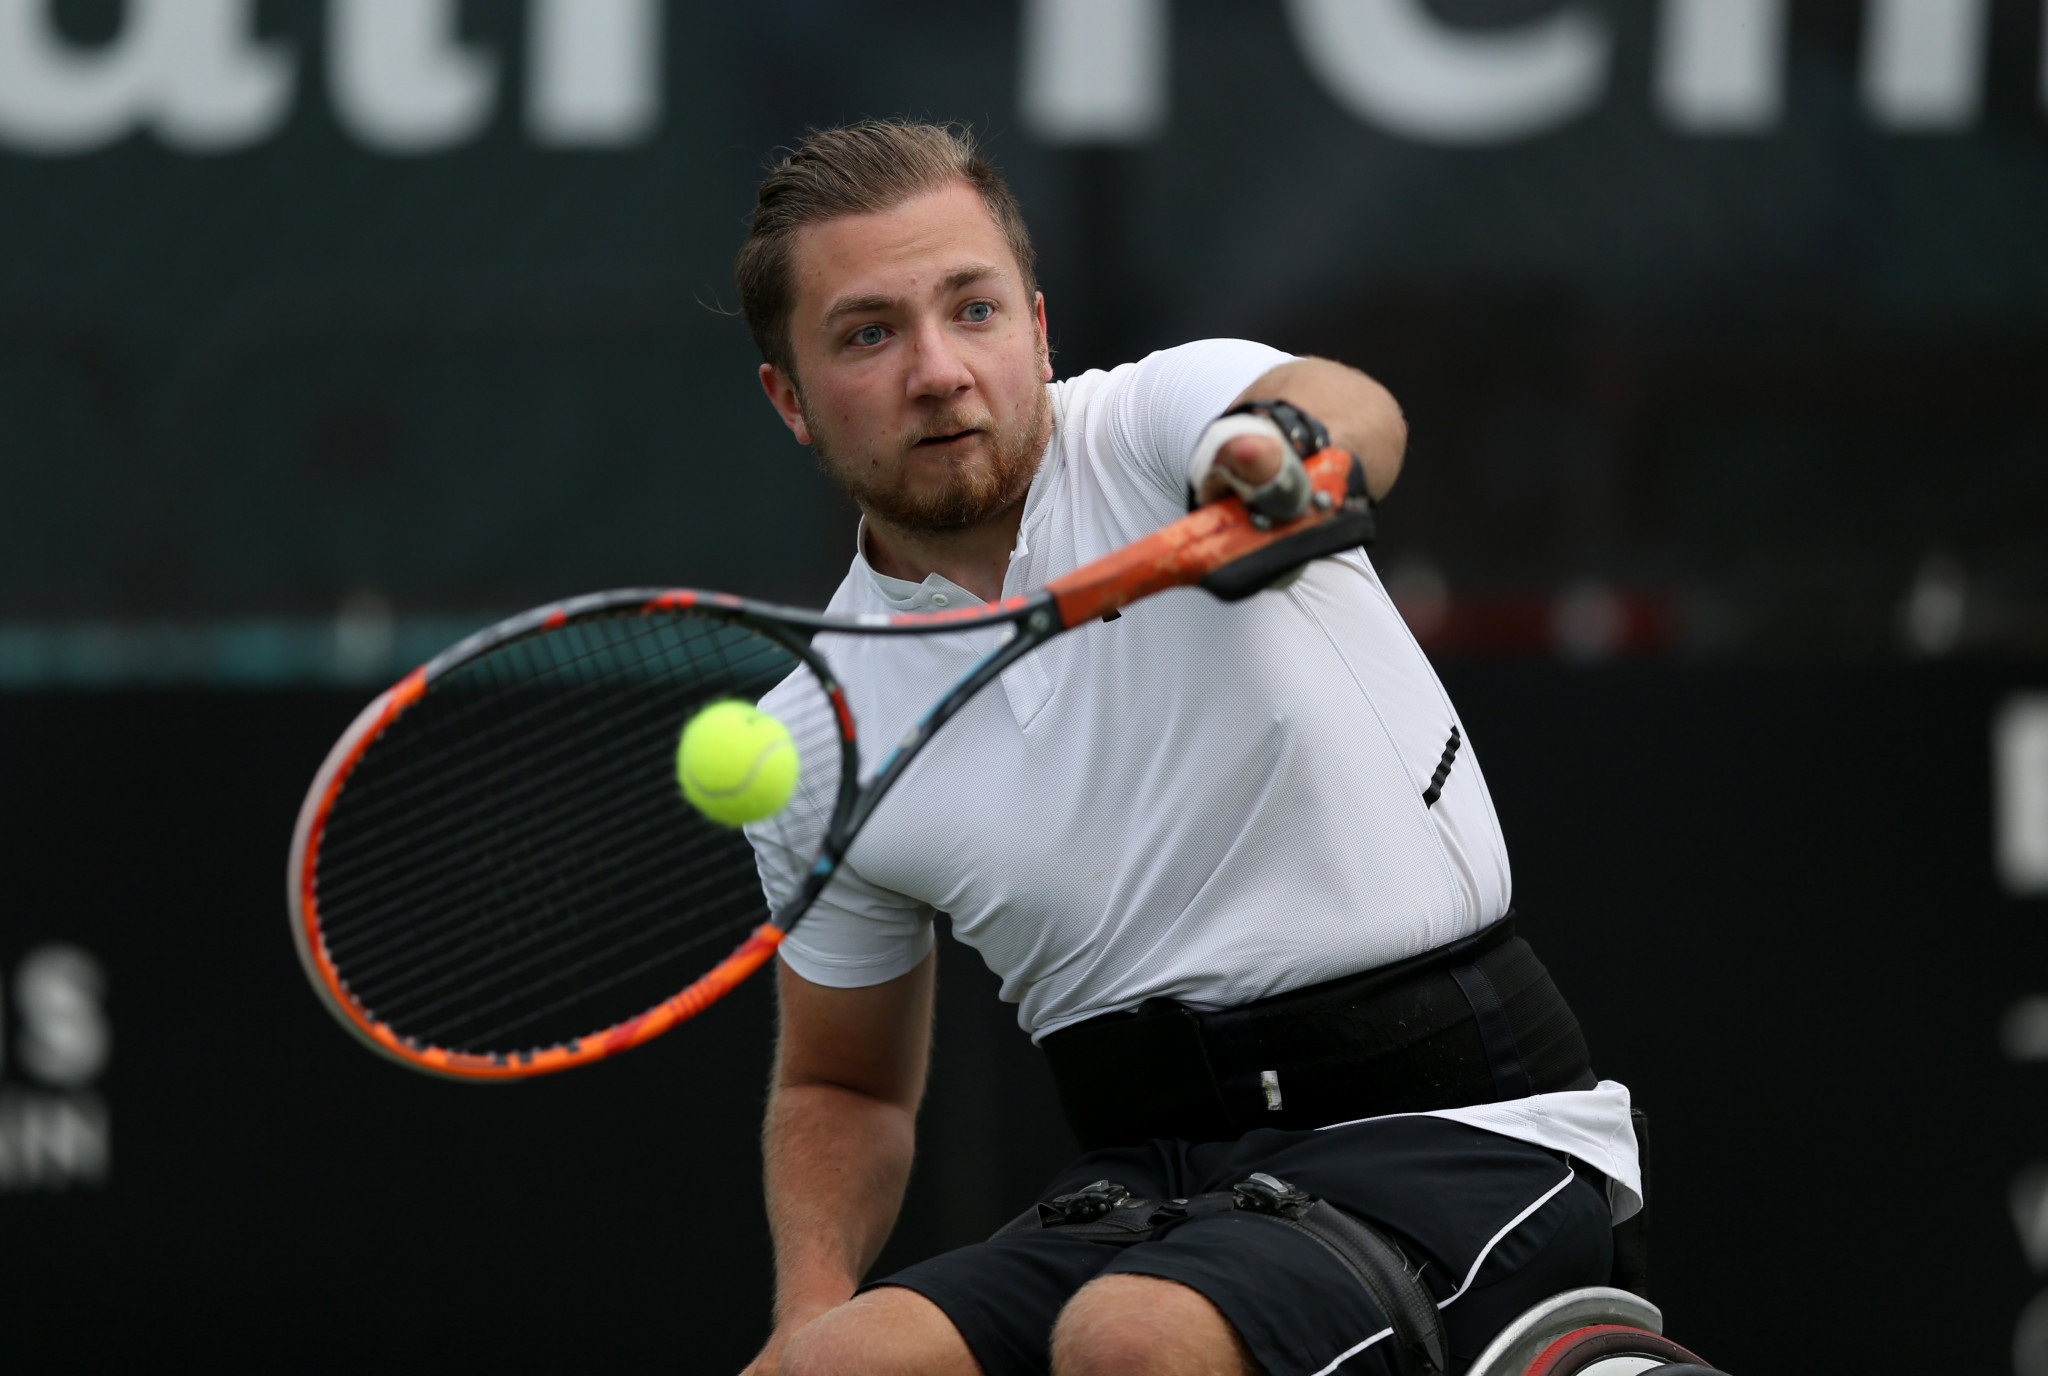 Schröder among four new faces joining ITF Wheelchair Tennis Player Council